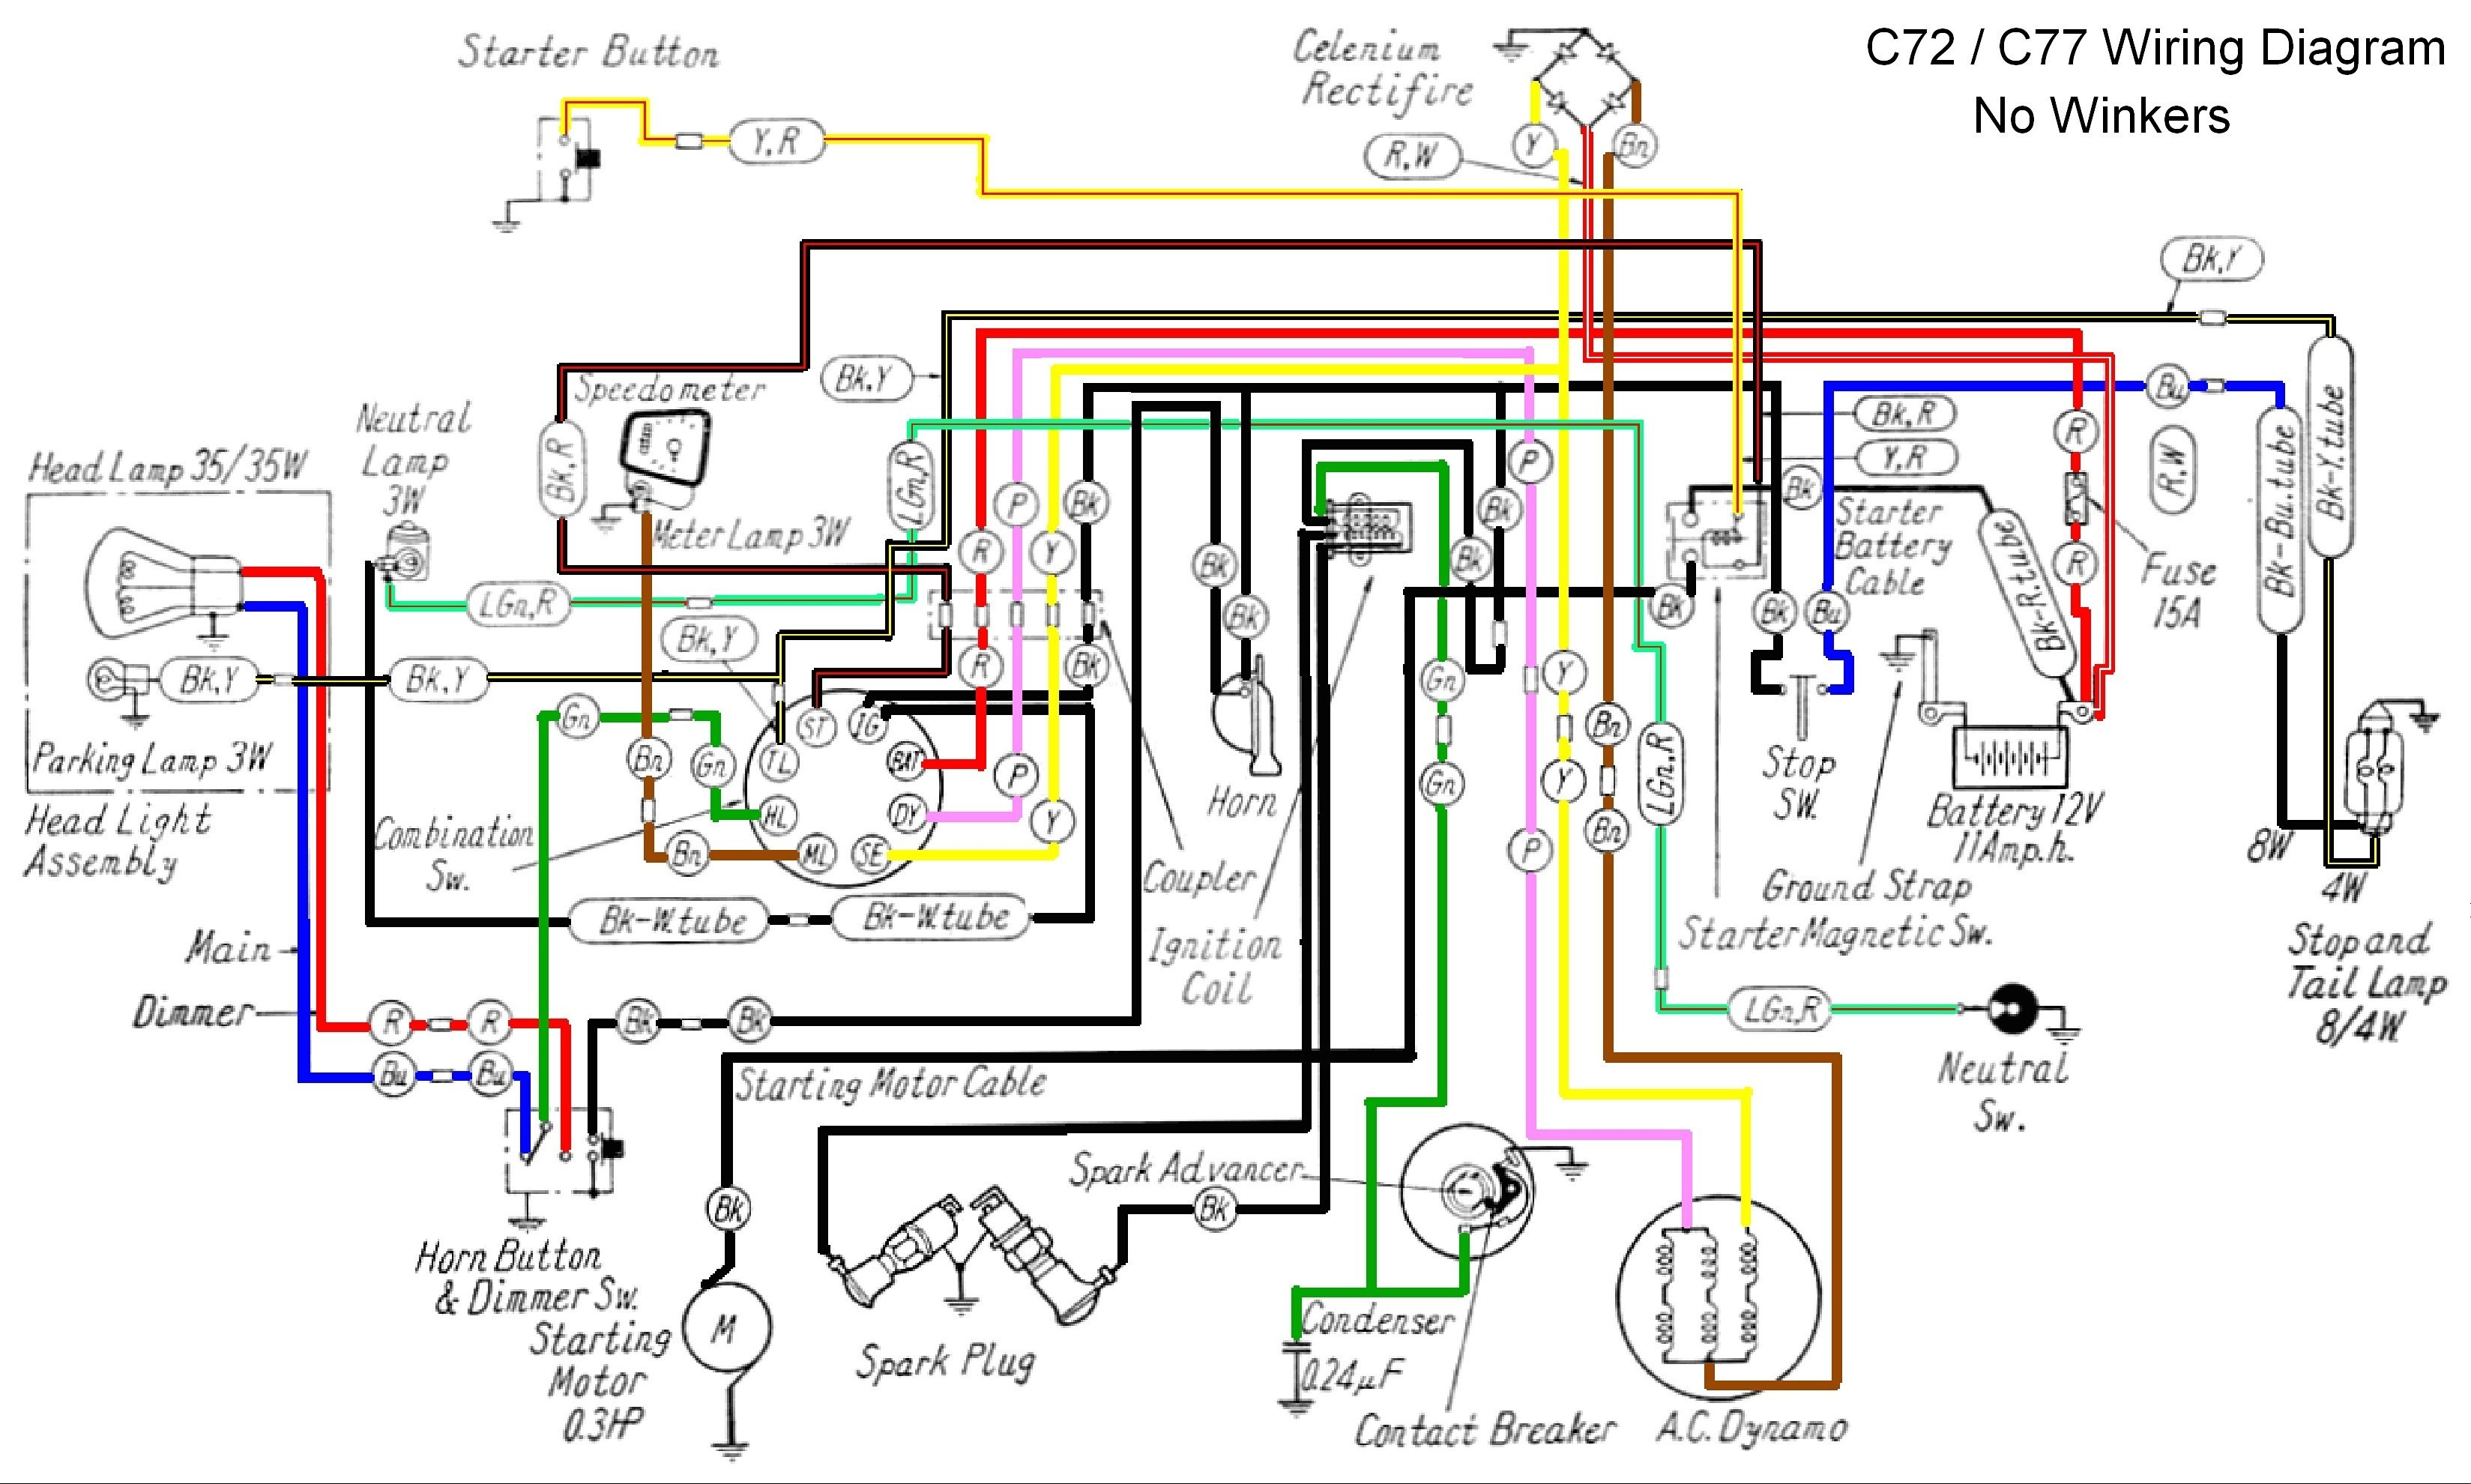 Honda Xl 125 Wiring Diagram Awesome Basic Motorcycle Wiring Diagram Gallery Everything You Of Honda Xl 125 Wiring Diagram